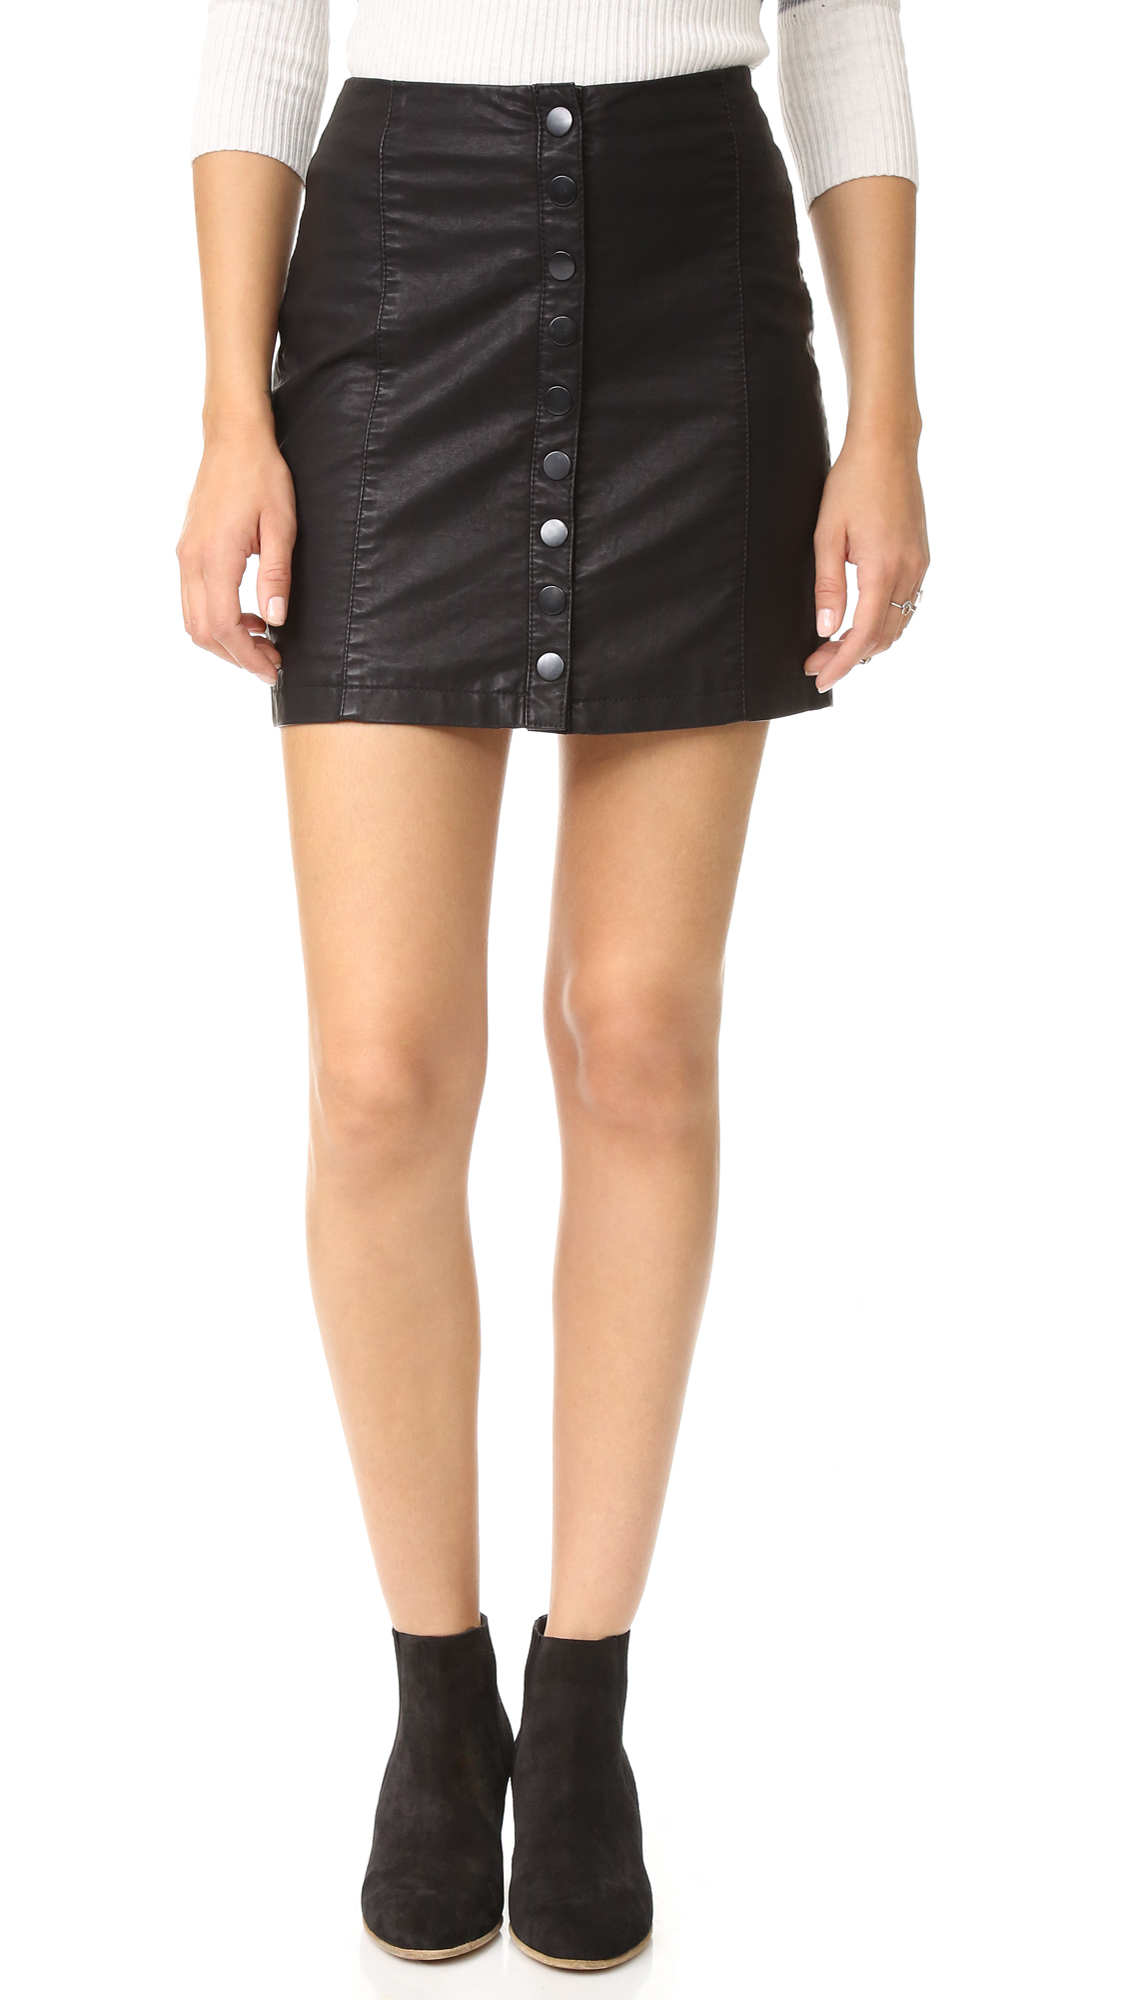 A lightweight, faux leather Free People miniskirt. Snap closures. Lined. Fabric: Faux leather. Shell: 100% polyurethane. Lining: 100% rayon. Hand wash. Imported, China. Measurements Length: 16.25in / 41cm Measurements from size 4. Available sizes: 12